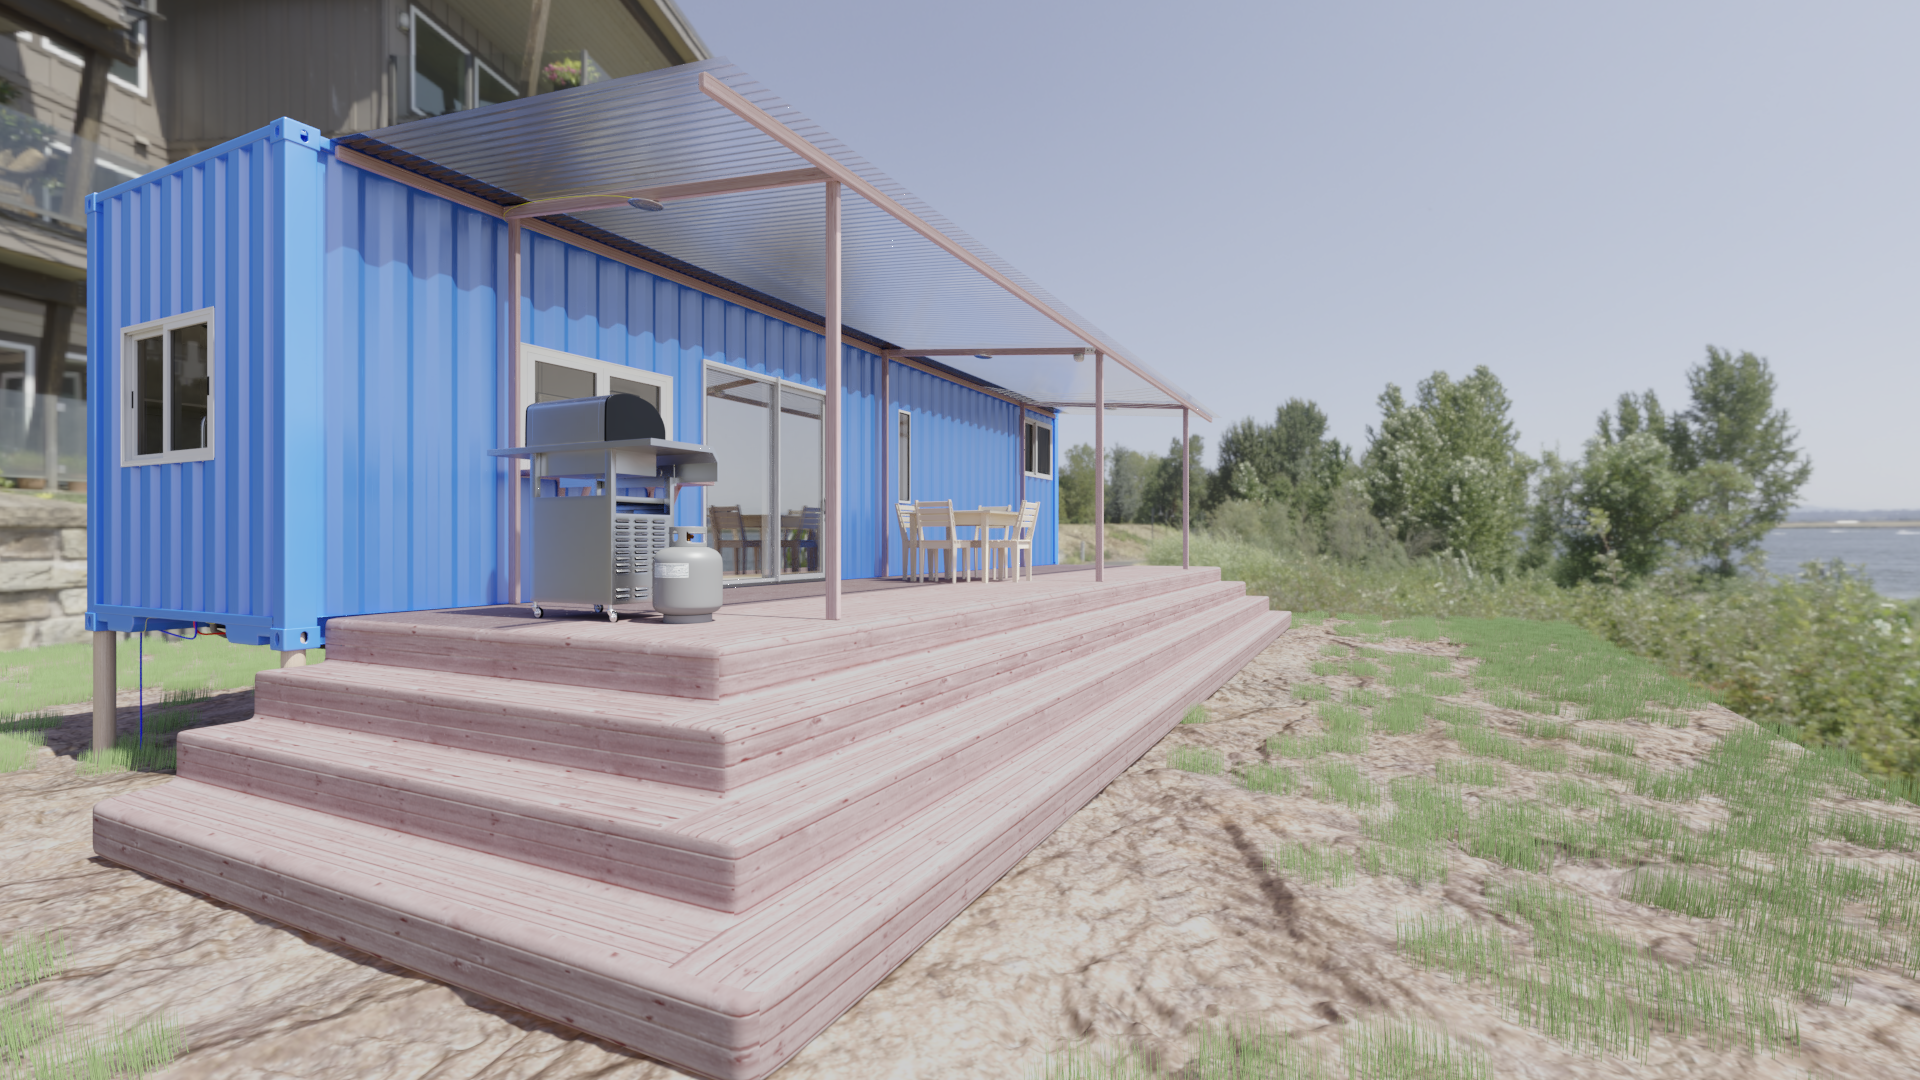 Shipping Container House preview image 1